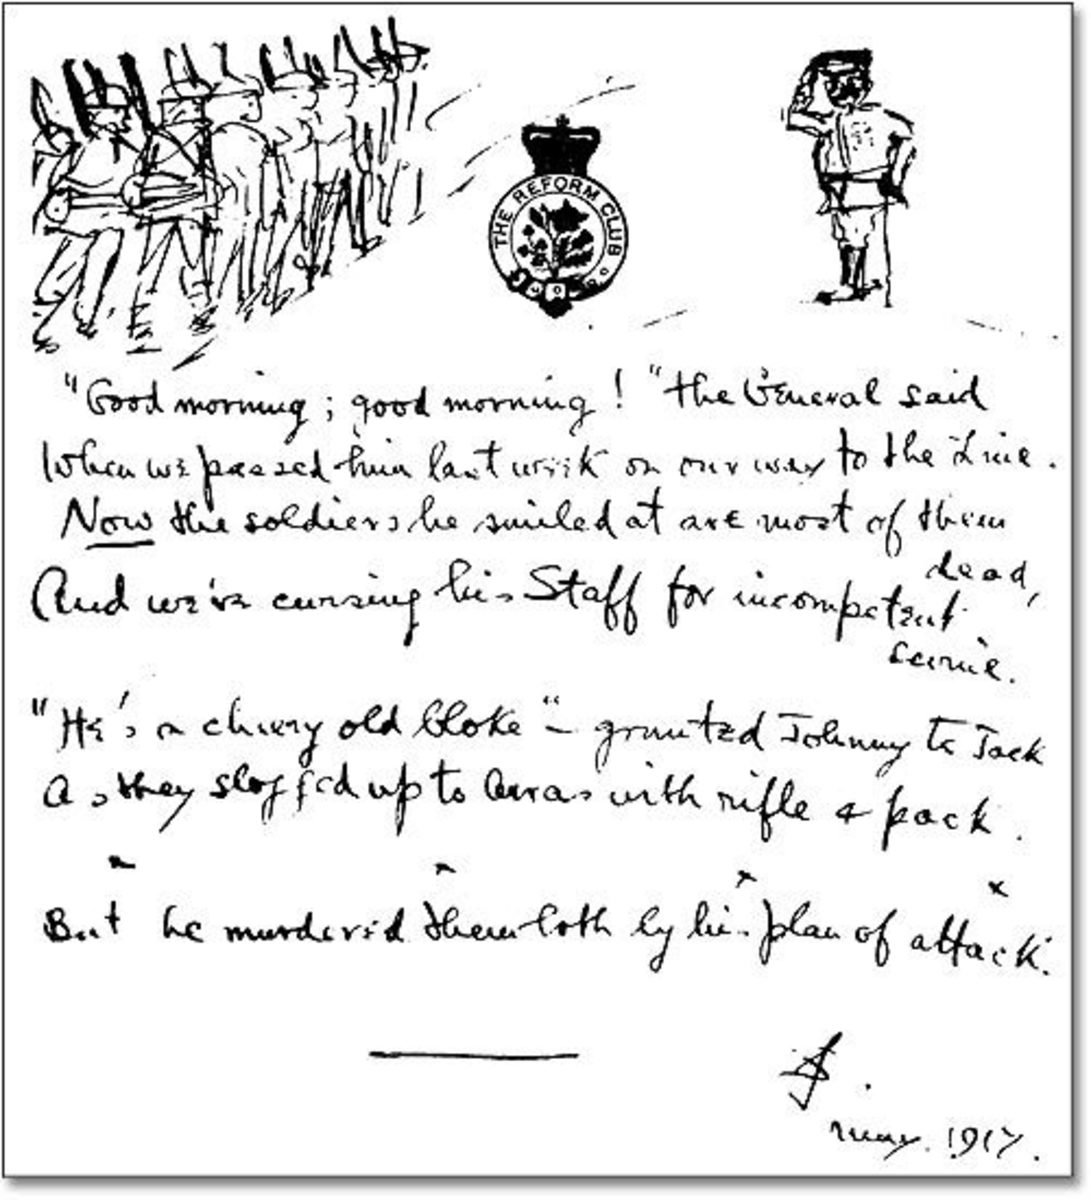 Manuscript of 'The General', a War Poem by Siegfried Sassoon